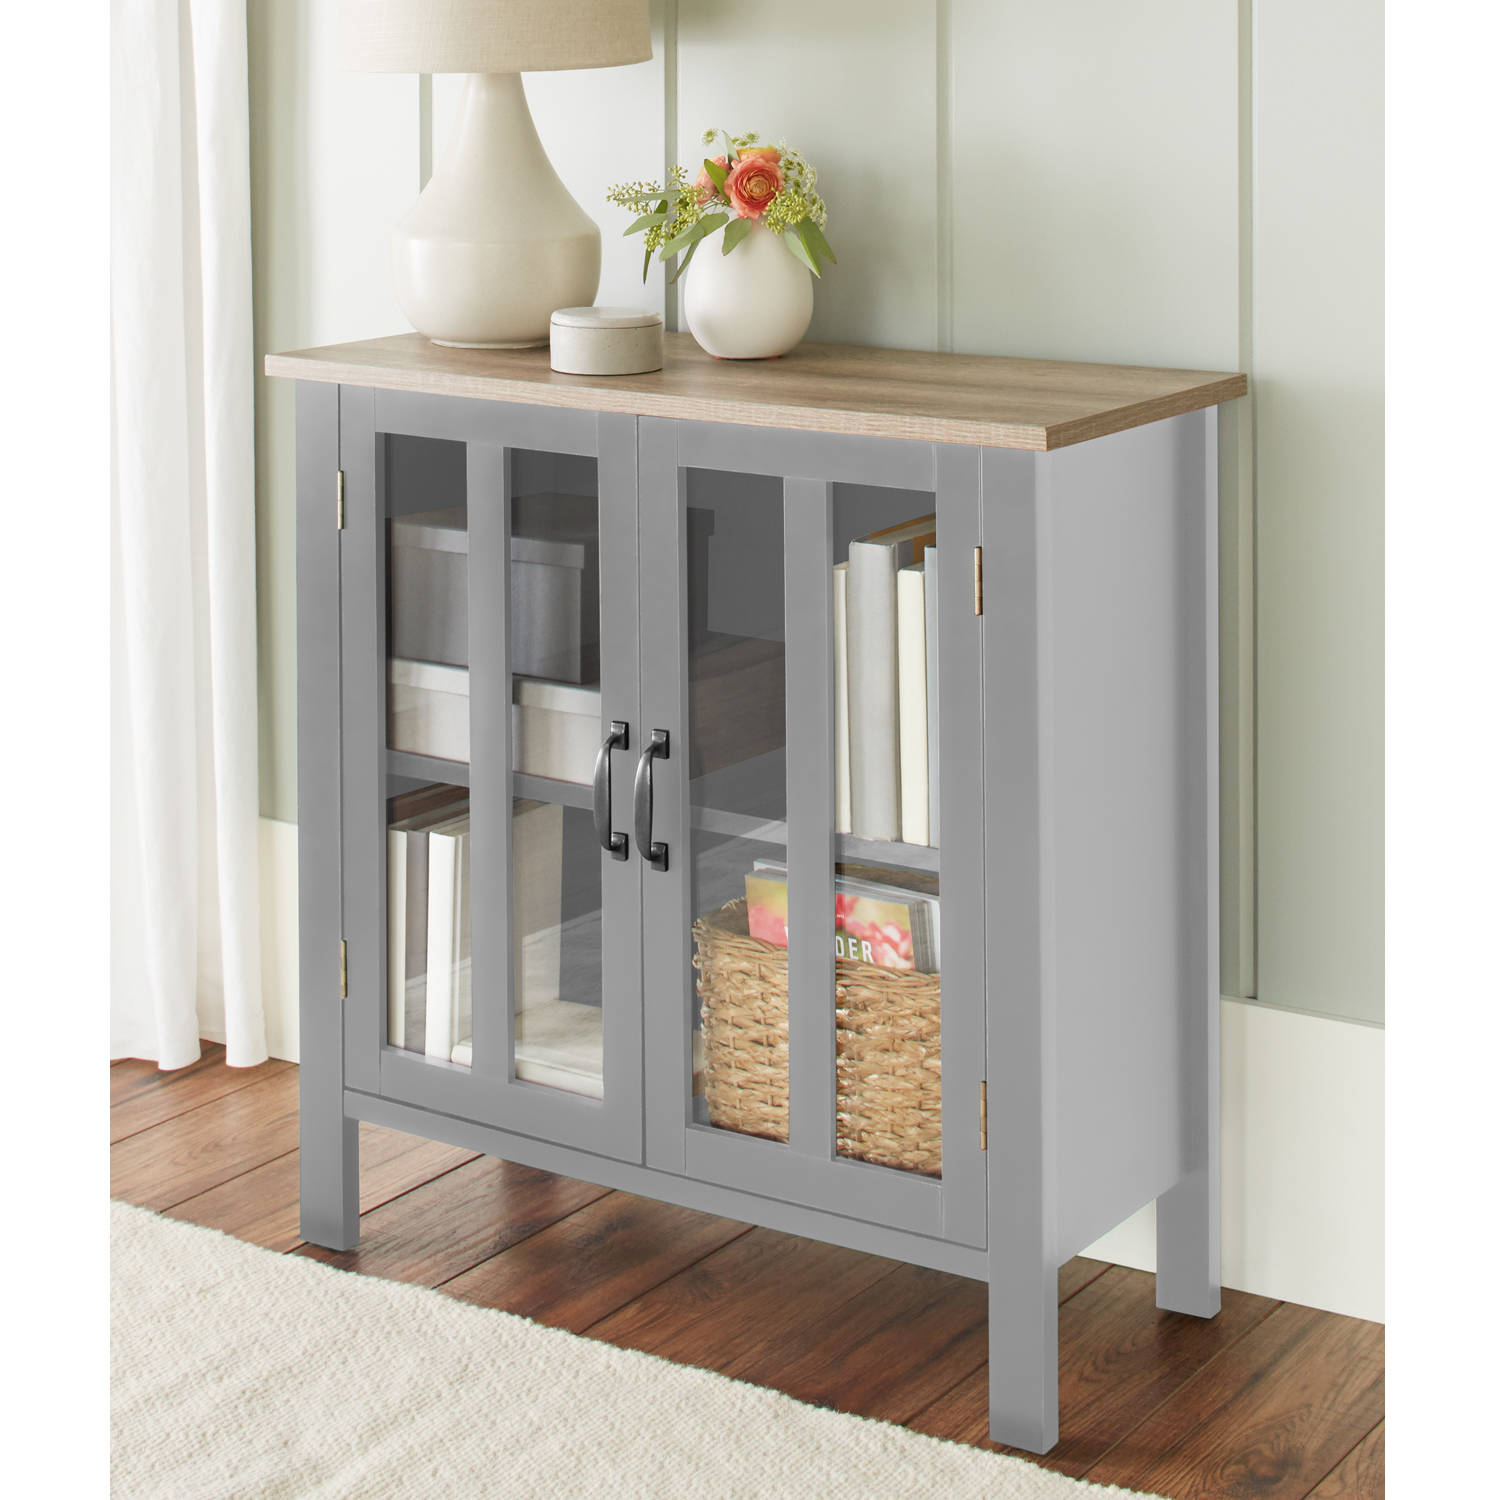 Better Homes and Gardens Bedford 2 Door Cabinet, Multiple Colors